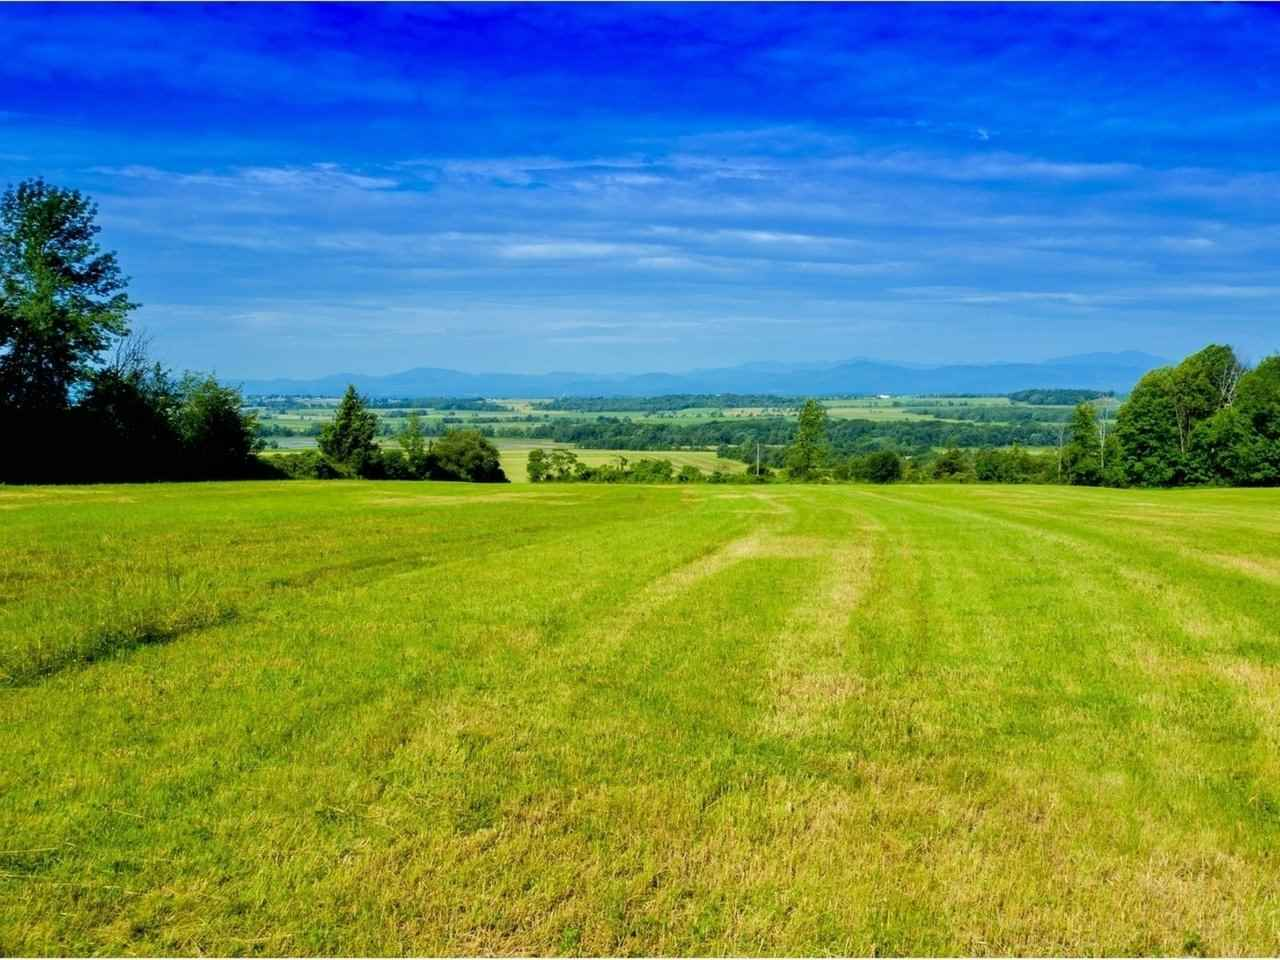 """Rare as hen's teeth, this new to the market 8.5 acre building site has all the pieces of the """"Build Your Dream Home"""" puzzle: great location, fully permitted for four bedroom septic, peaceful, natural surroundings, beautiful vistas of the Lake Champlain and Otter Creek Valleys with the western backdrop of the Adirondack's high peaks. Located in the small, well grounded community of Waltham, you will become the newest member of the greater Vergennes Community, one that is full of excitement and enthusiasm during all seasons of the year. Take advantage of this wonderful farm-to-table lifestyle that is Addison County and establish your own one-of-a-kind family homestead."""